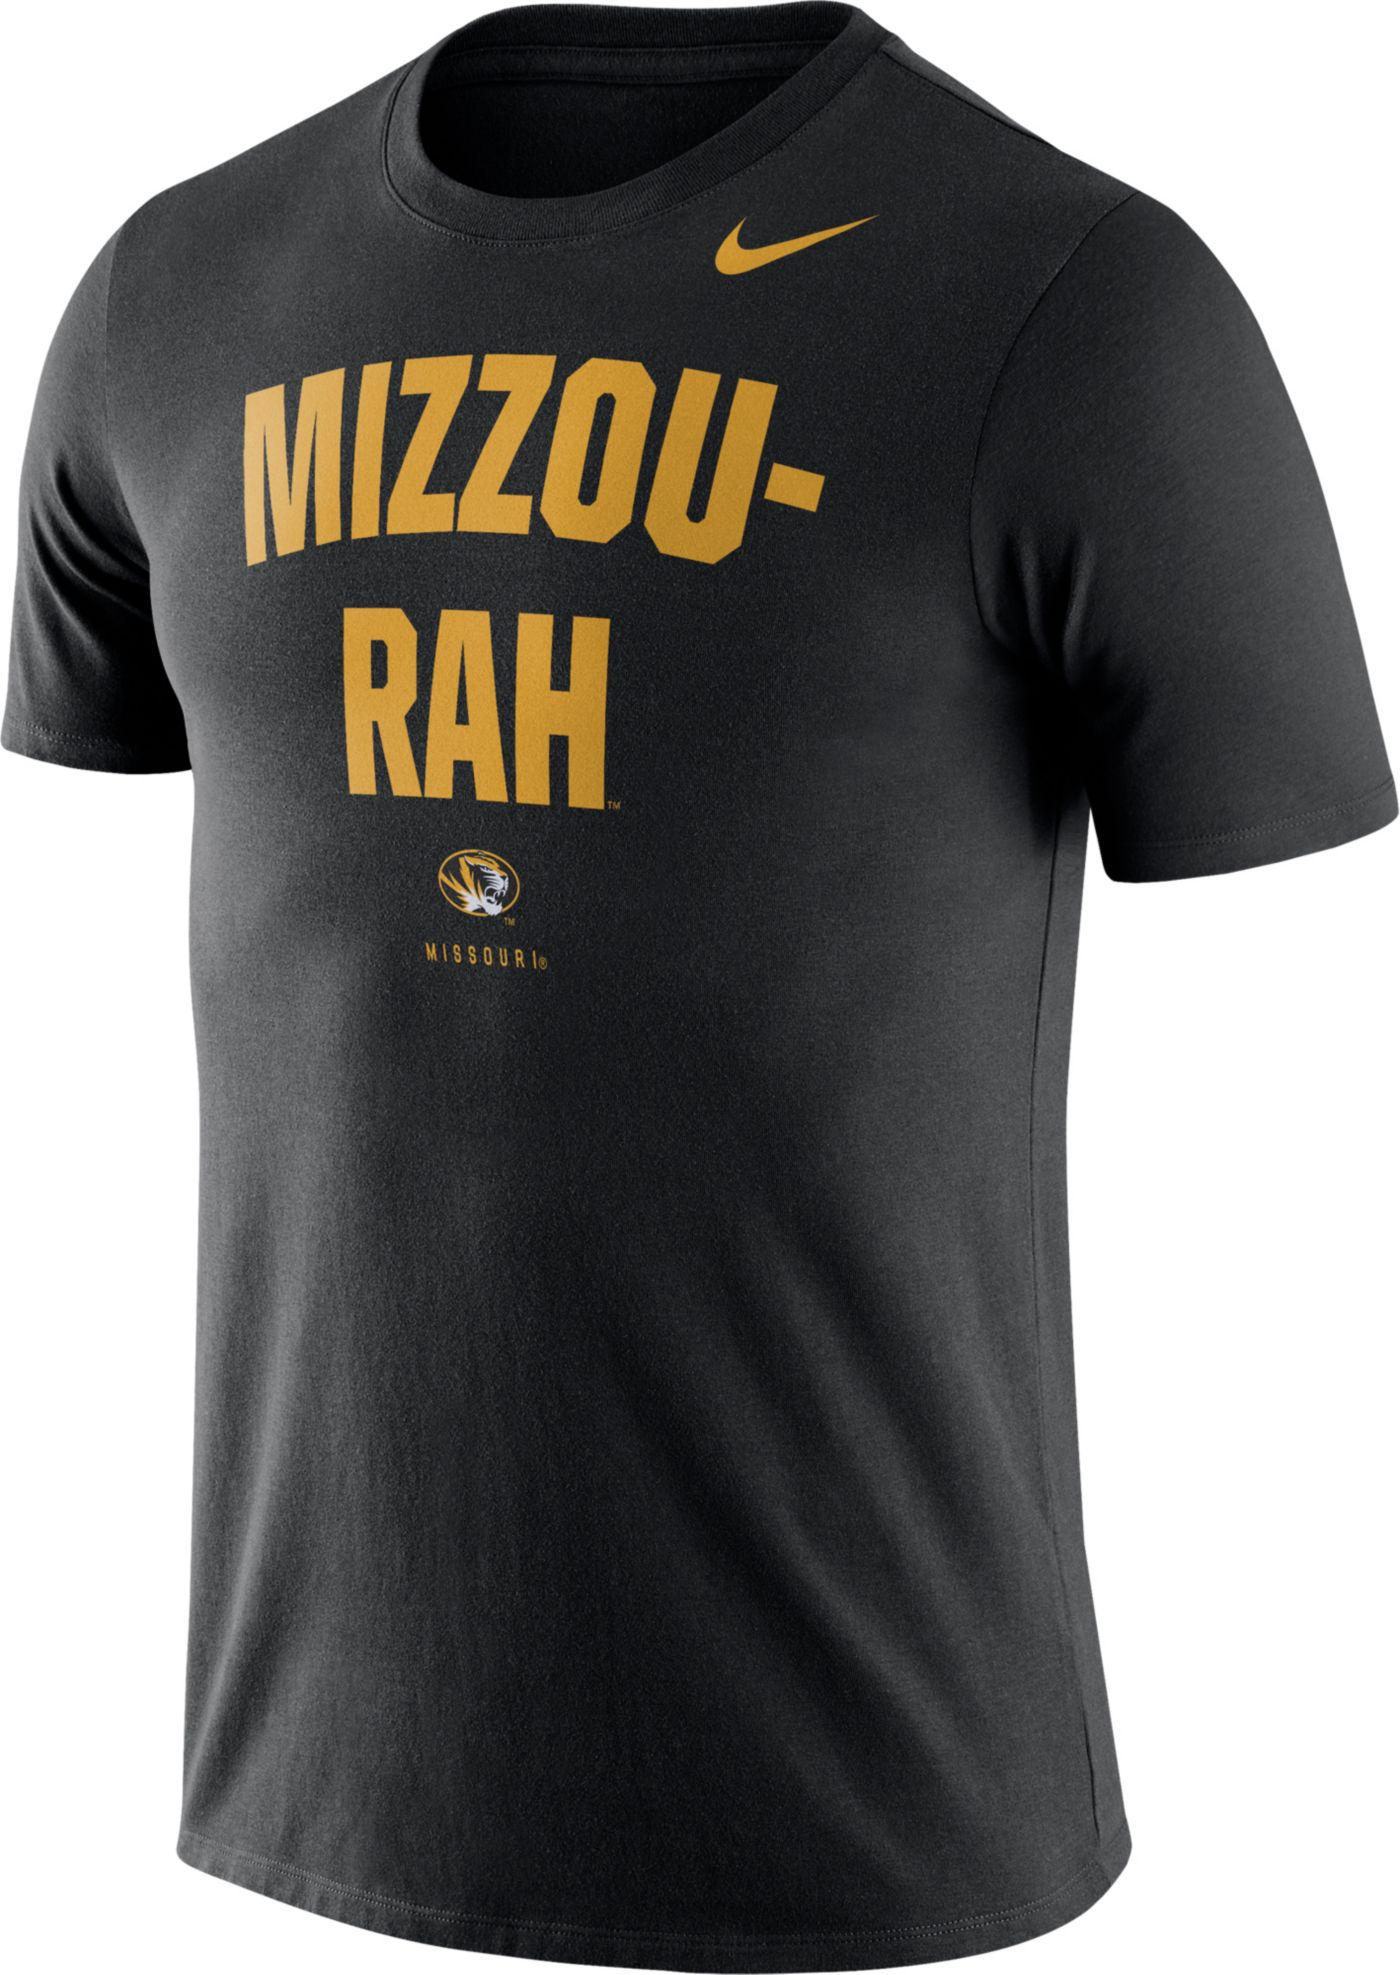 Nike Men's Missouri Tigers Dri-FIT Phrase Black T-Shirt